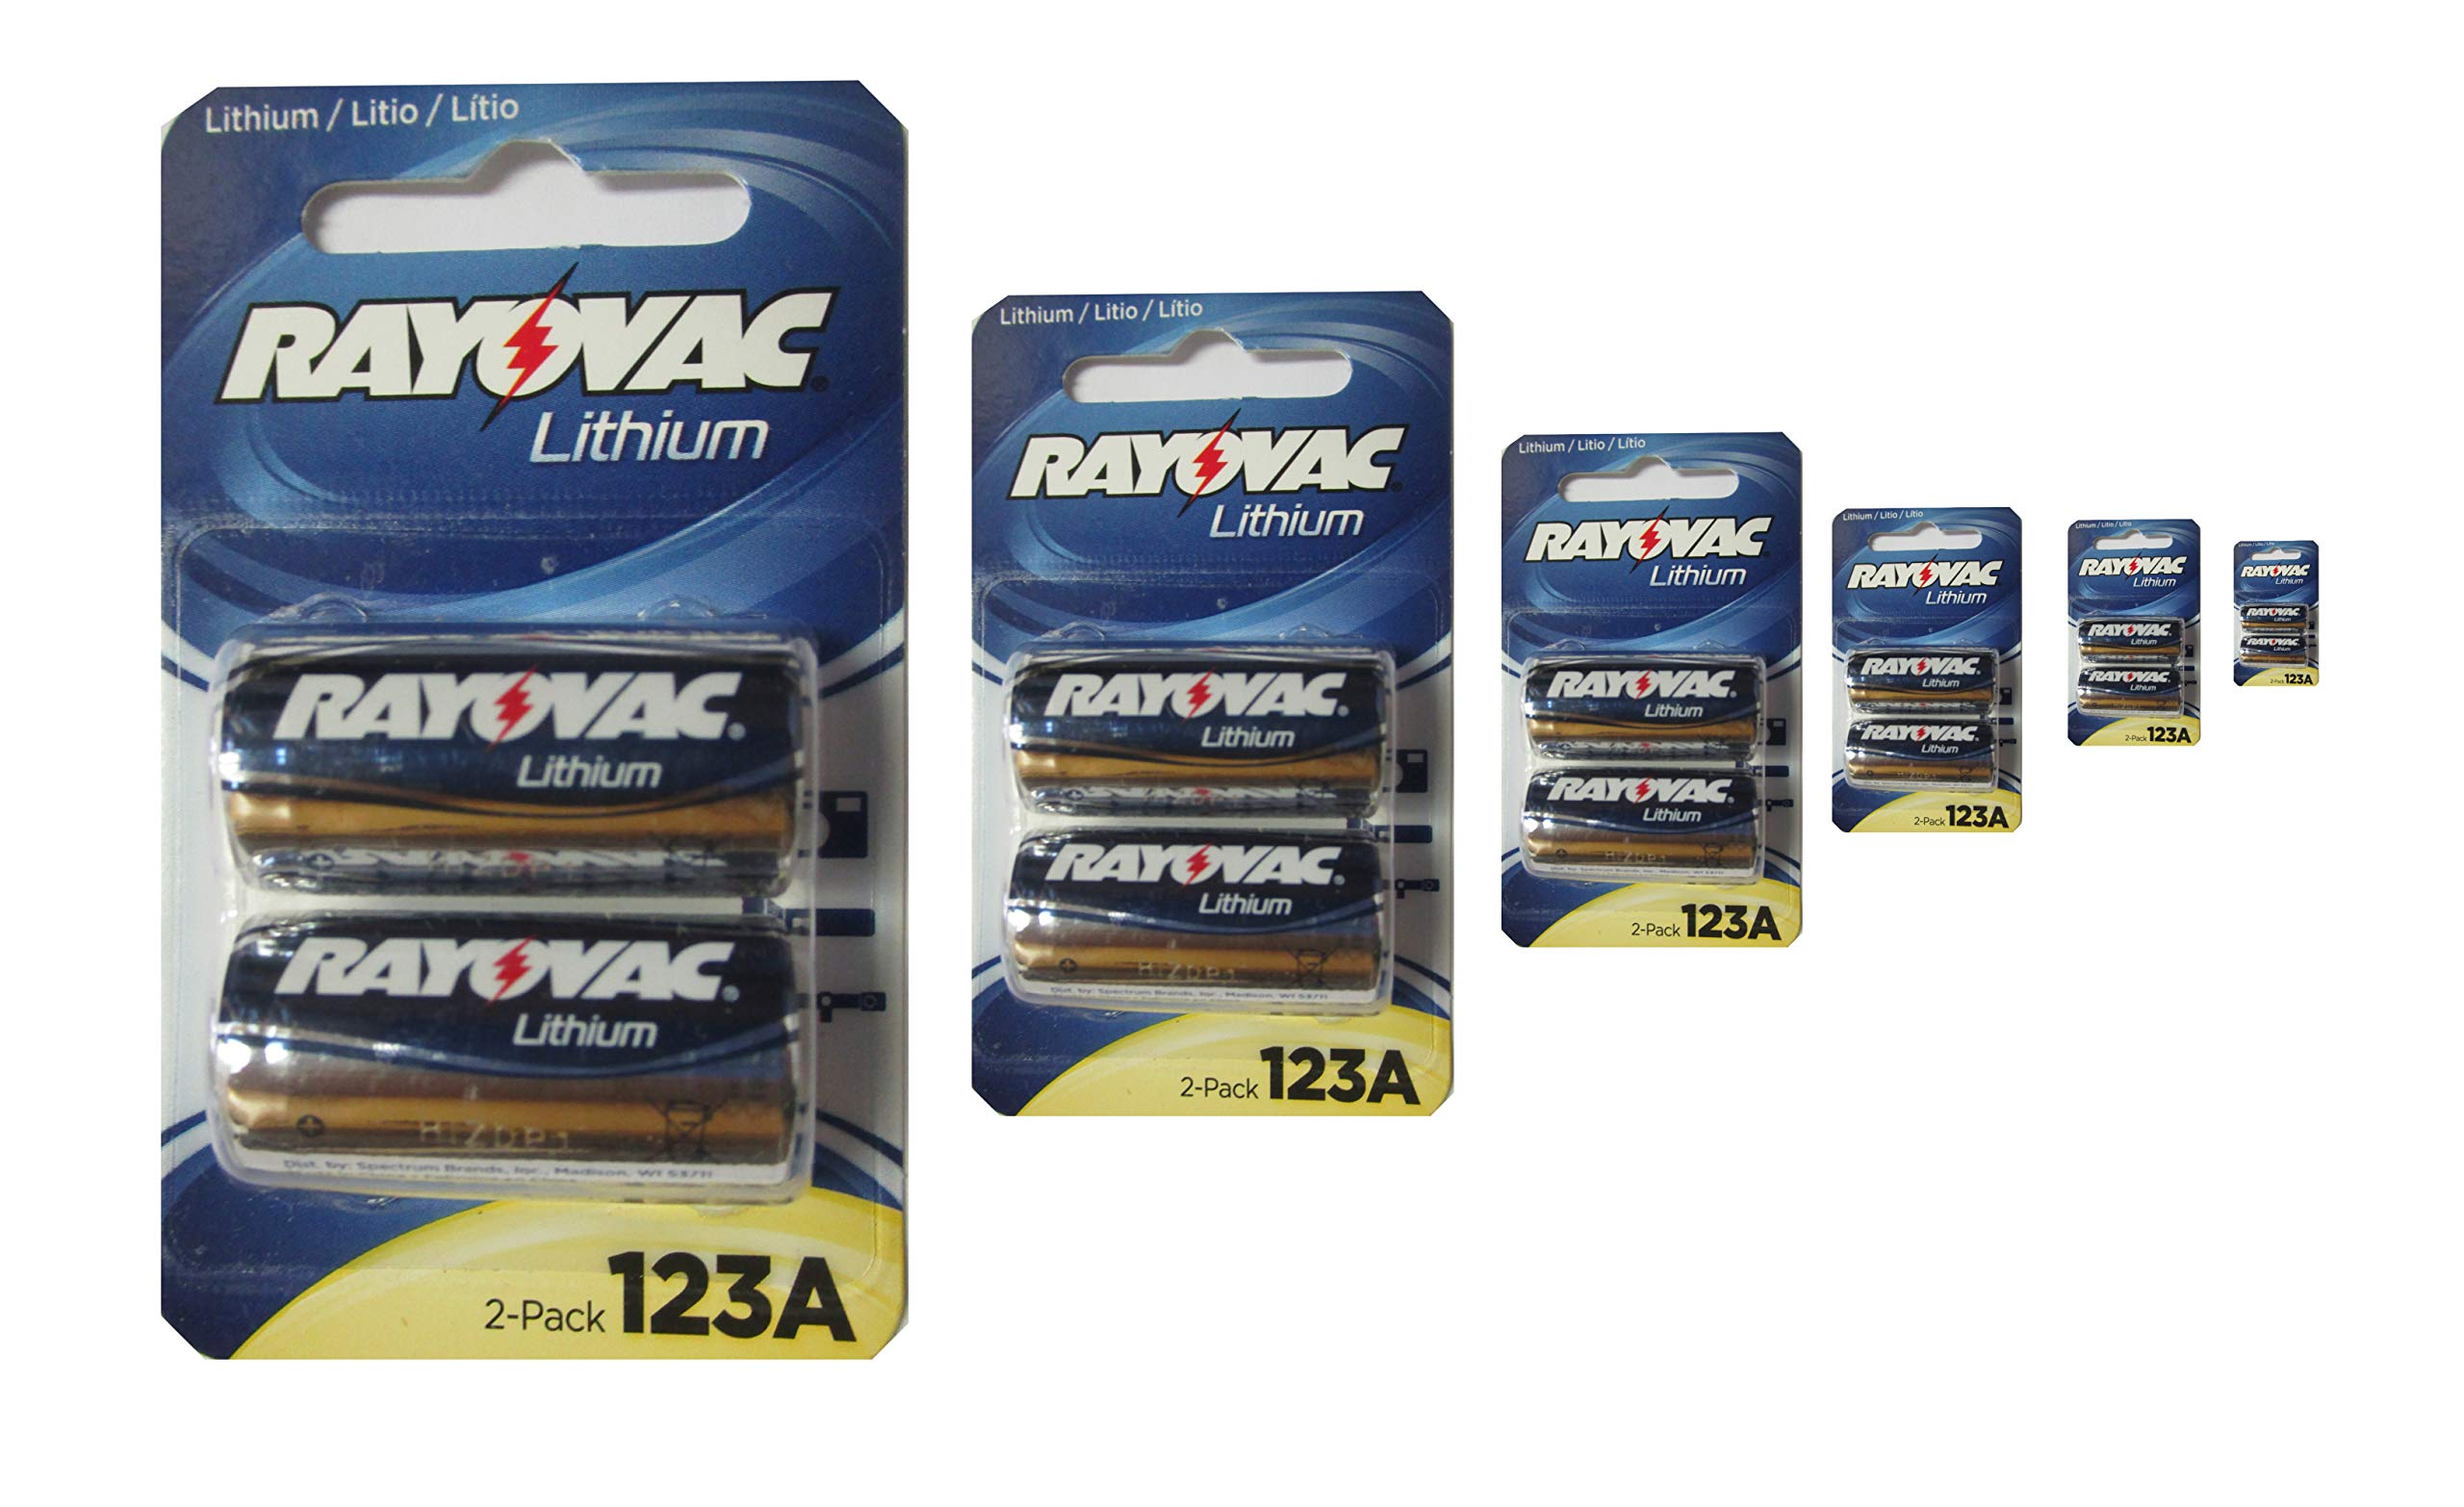 Rayovac Lithium Metal Batteries 123A 12 Count (6 Packs 2) by Rayovac